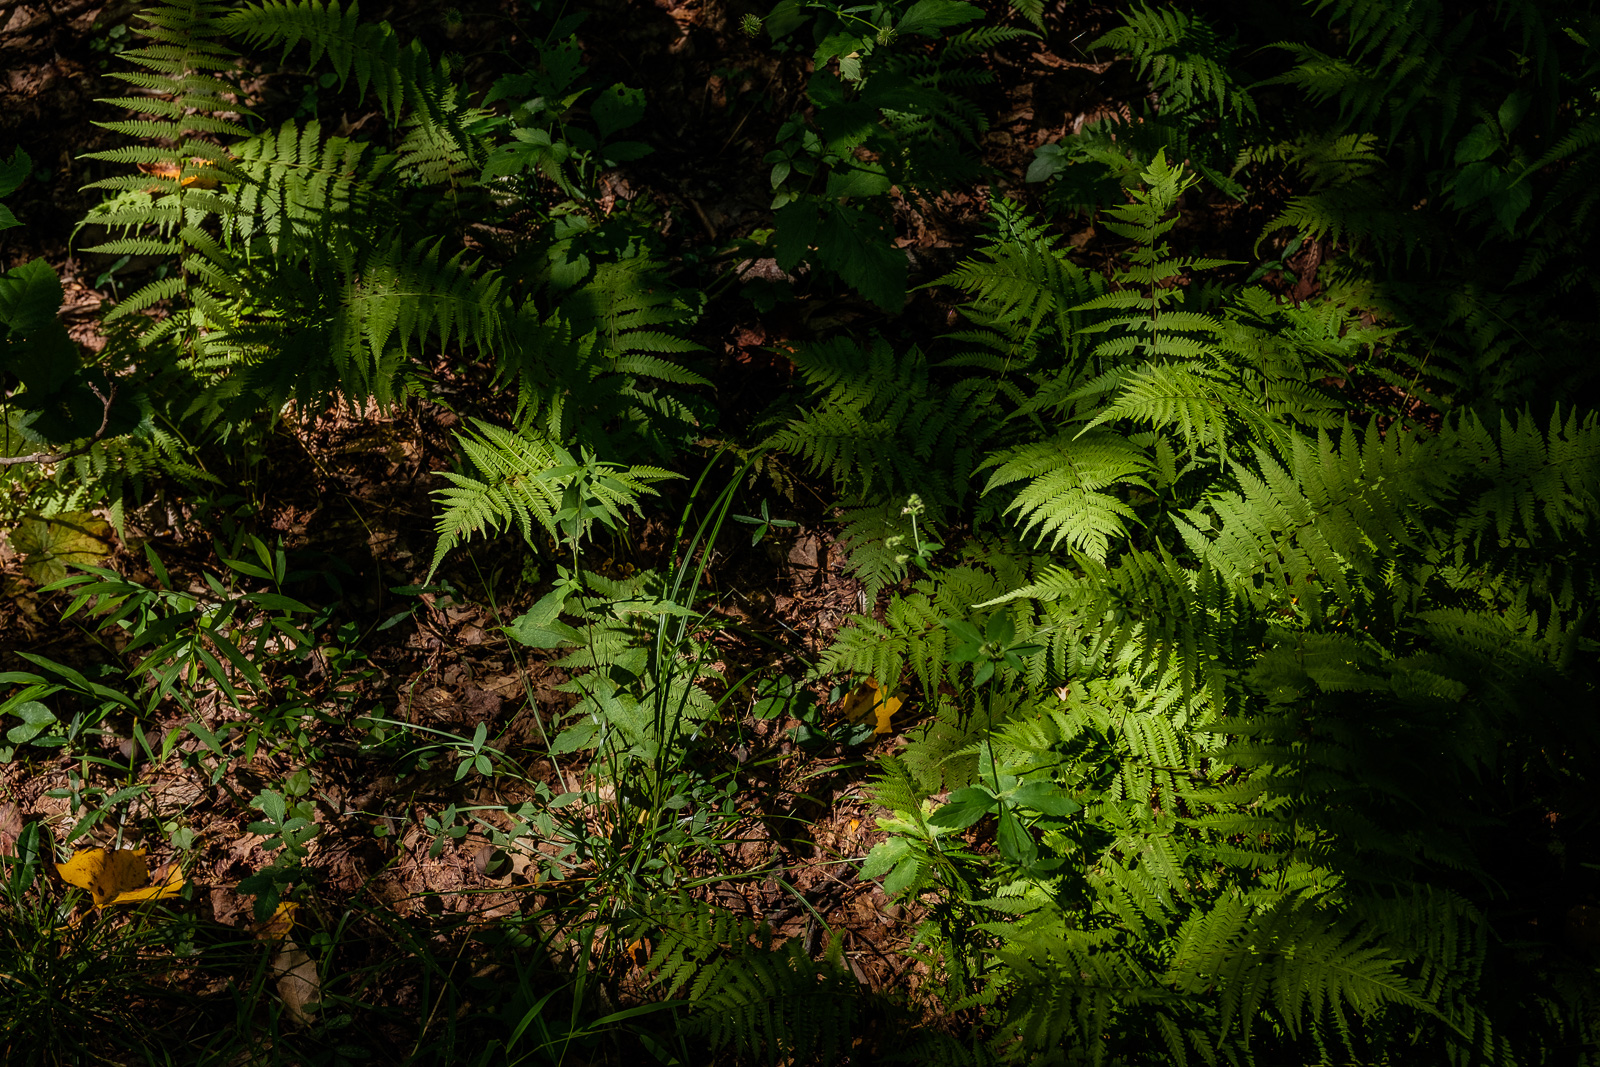 primordial ferns in dappled light